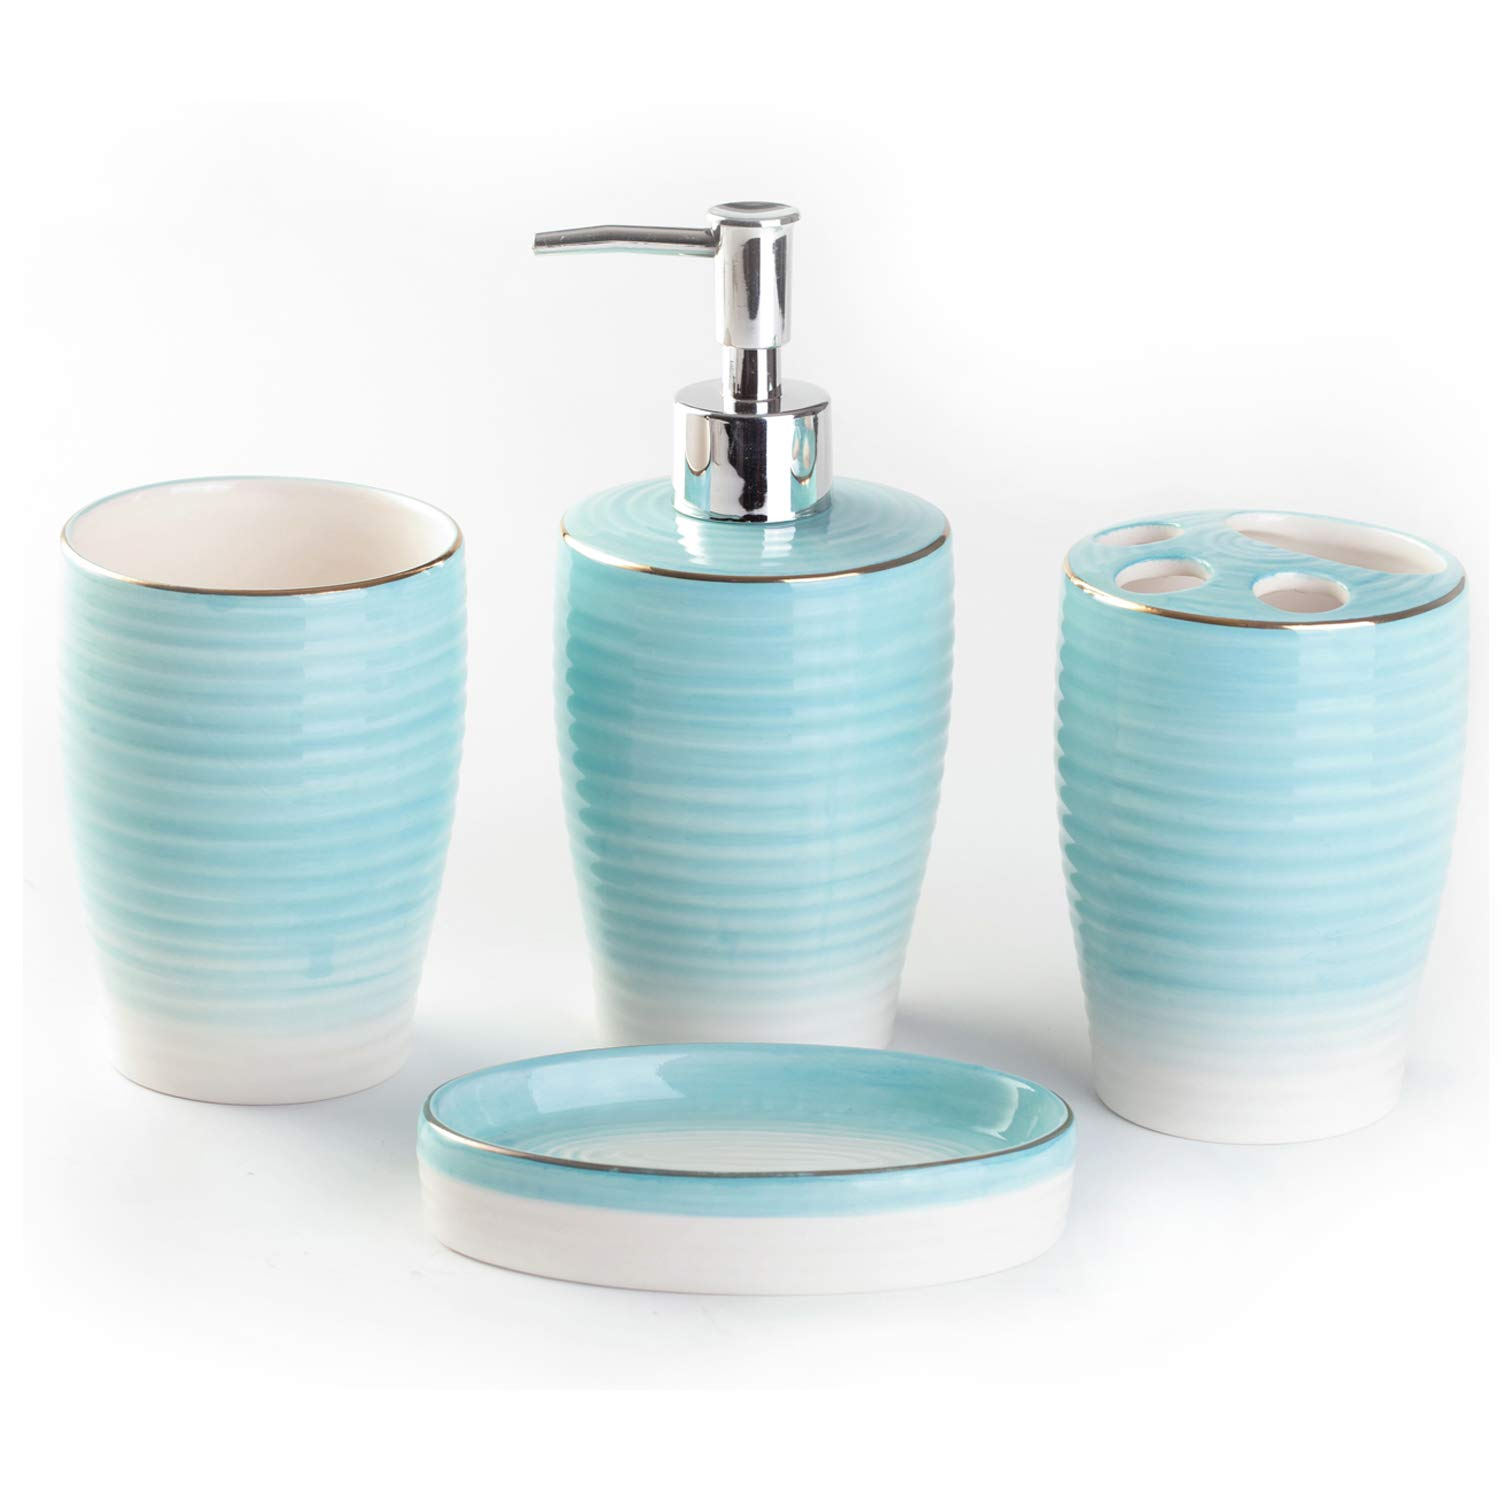 Bloom Flower 4-Piece Stoneware Bathroom Accessory Sets- Toothbrush Holder, Tumbler, Soap Dish & Dispenser, Aqua